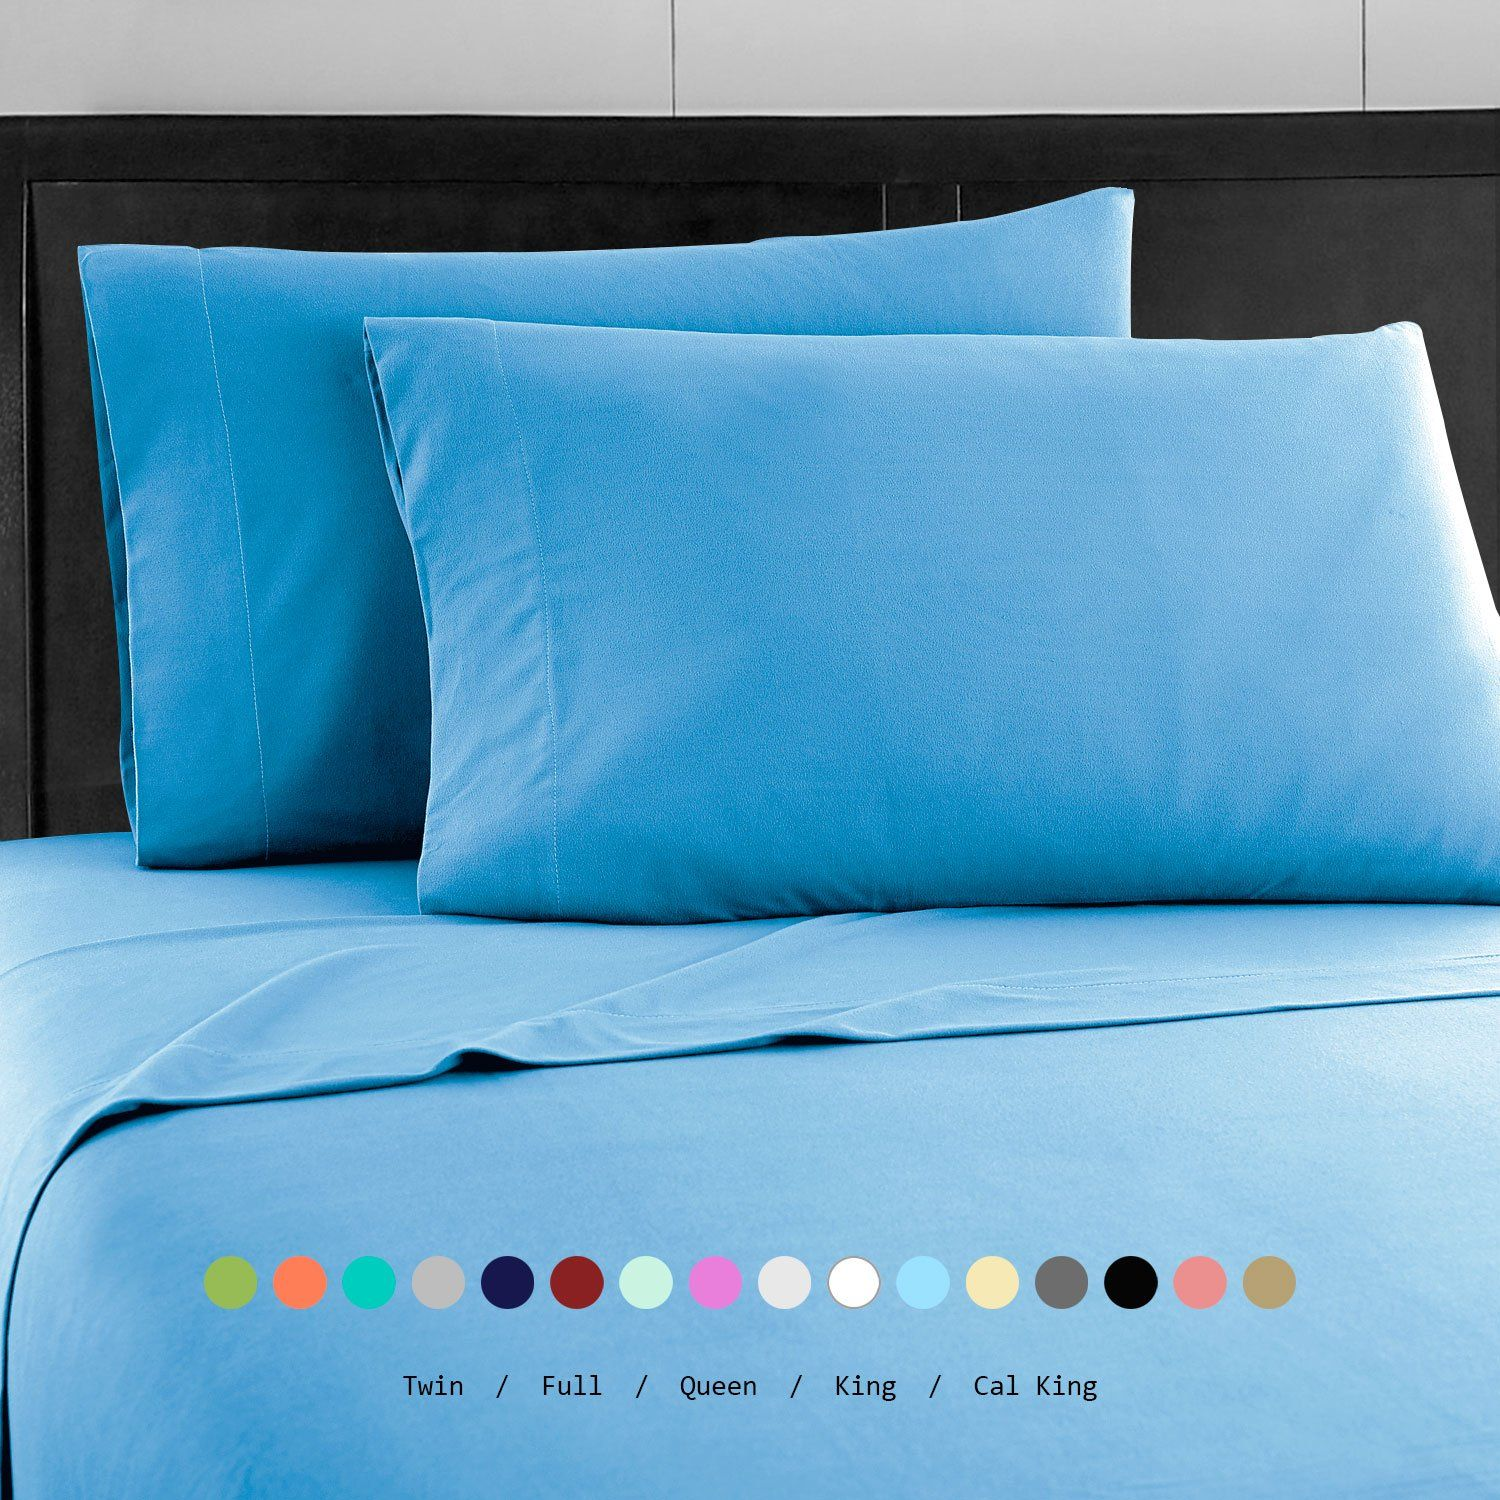 Prime Bedding Bed Sheets   4 Piece California King Sheets, Deep Pocket  Fitted Sheet,